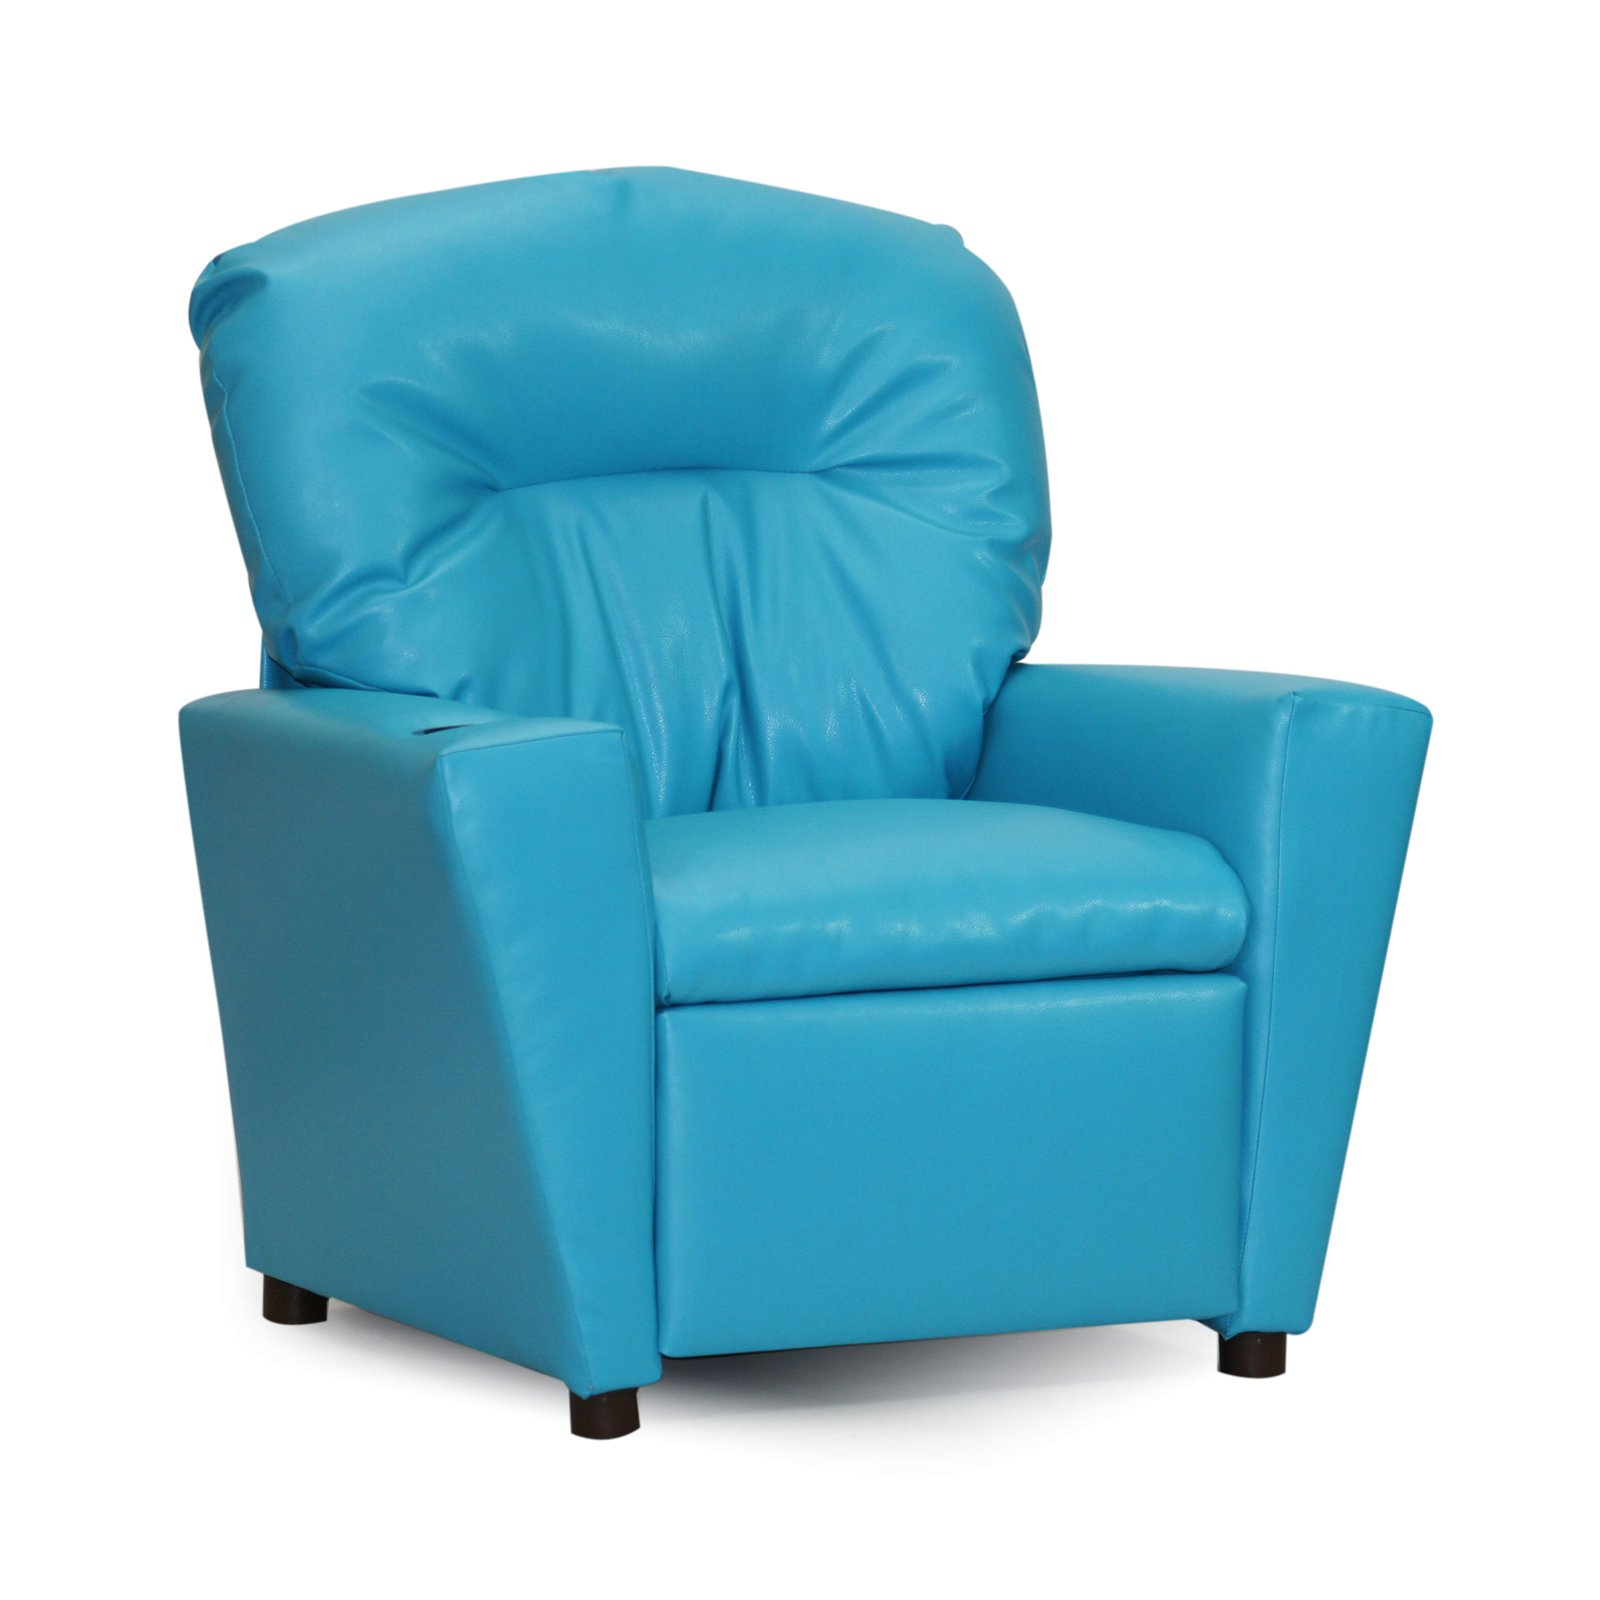 Kidz World Recliner with Cup Holder - Turquoise Vinyl